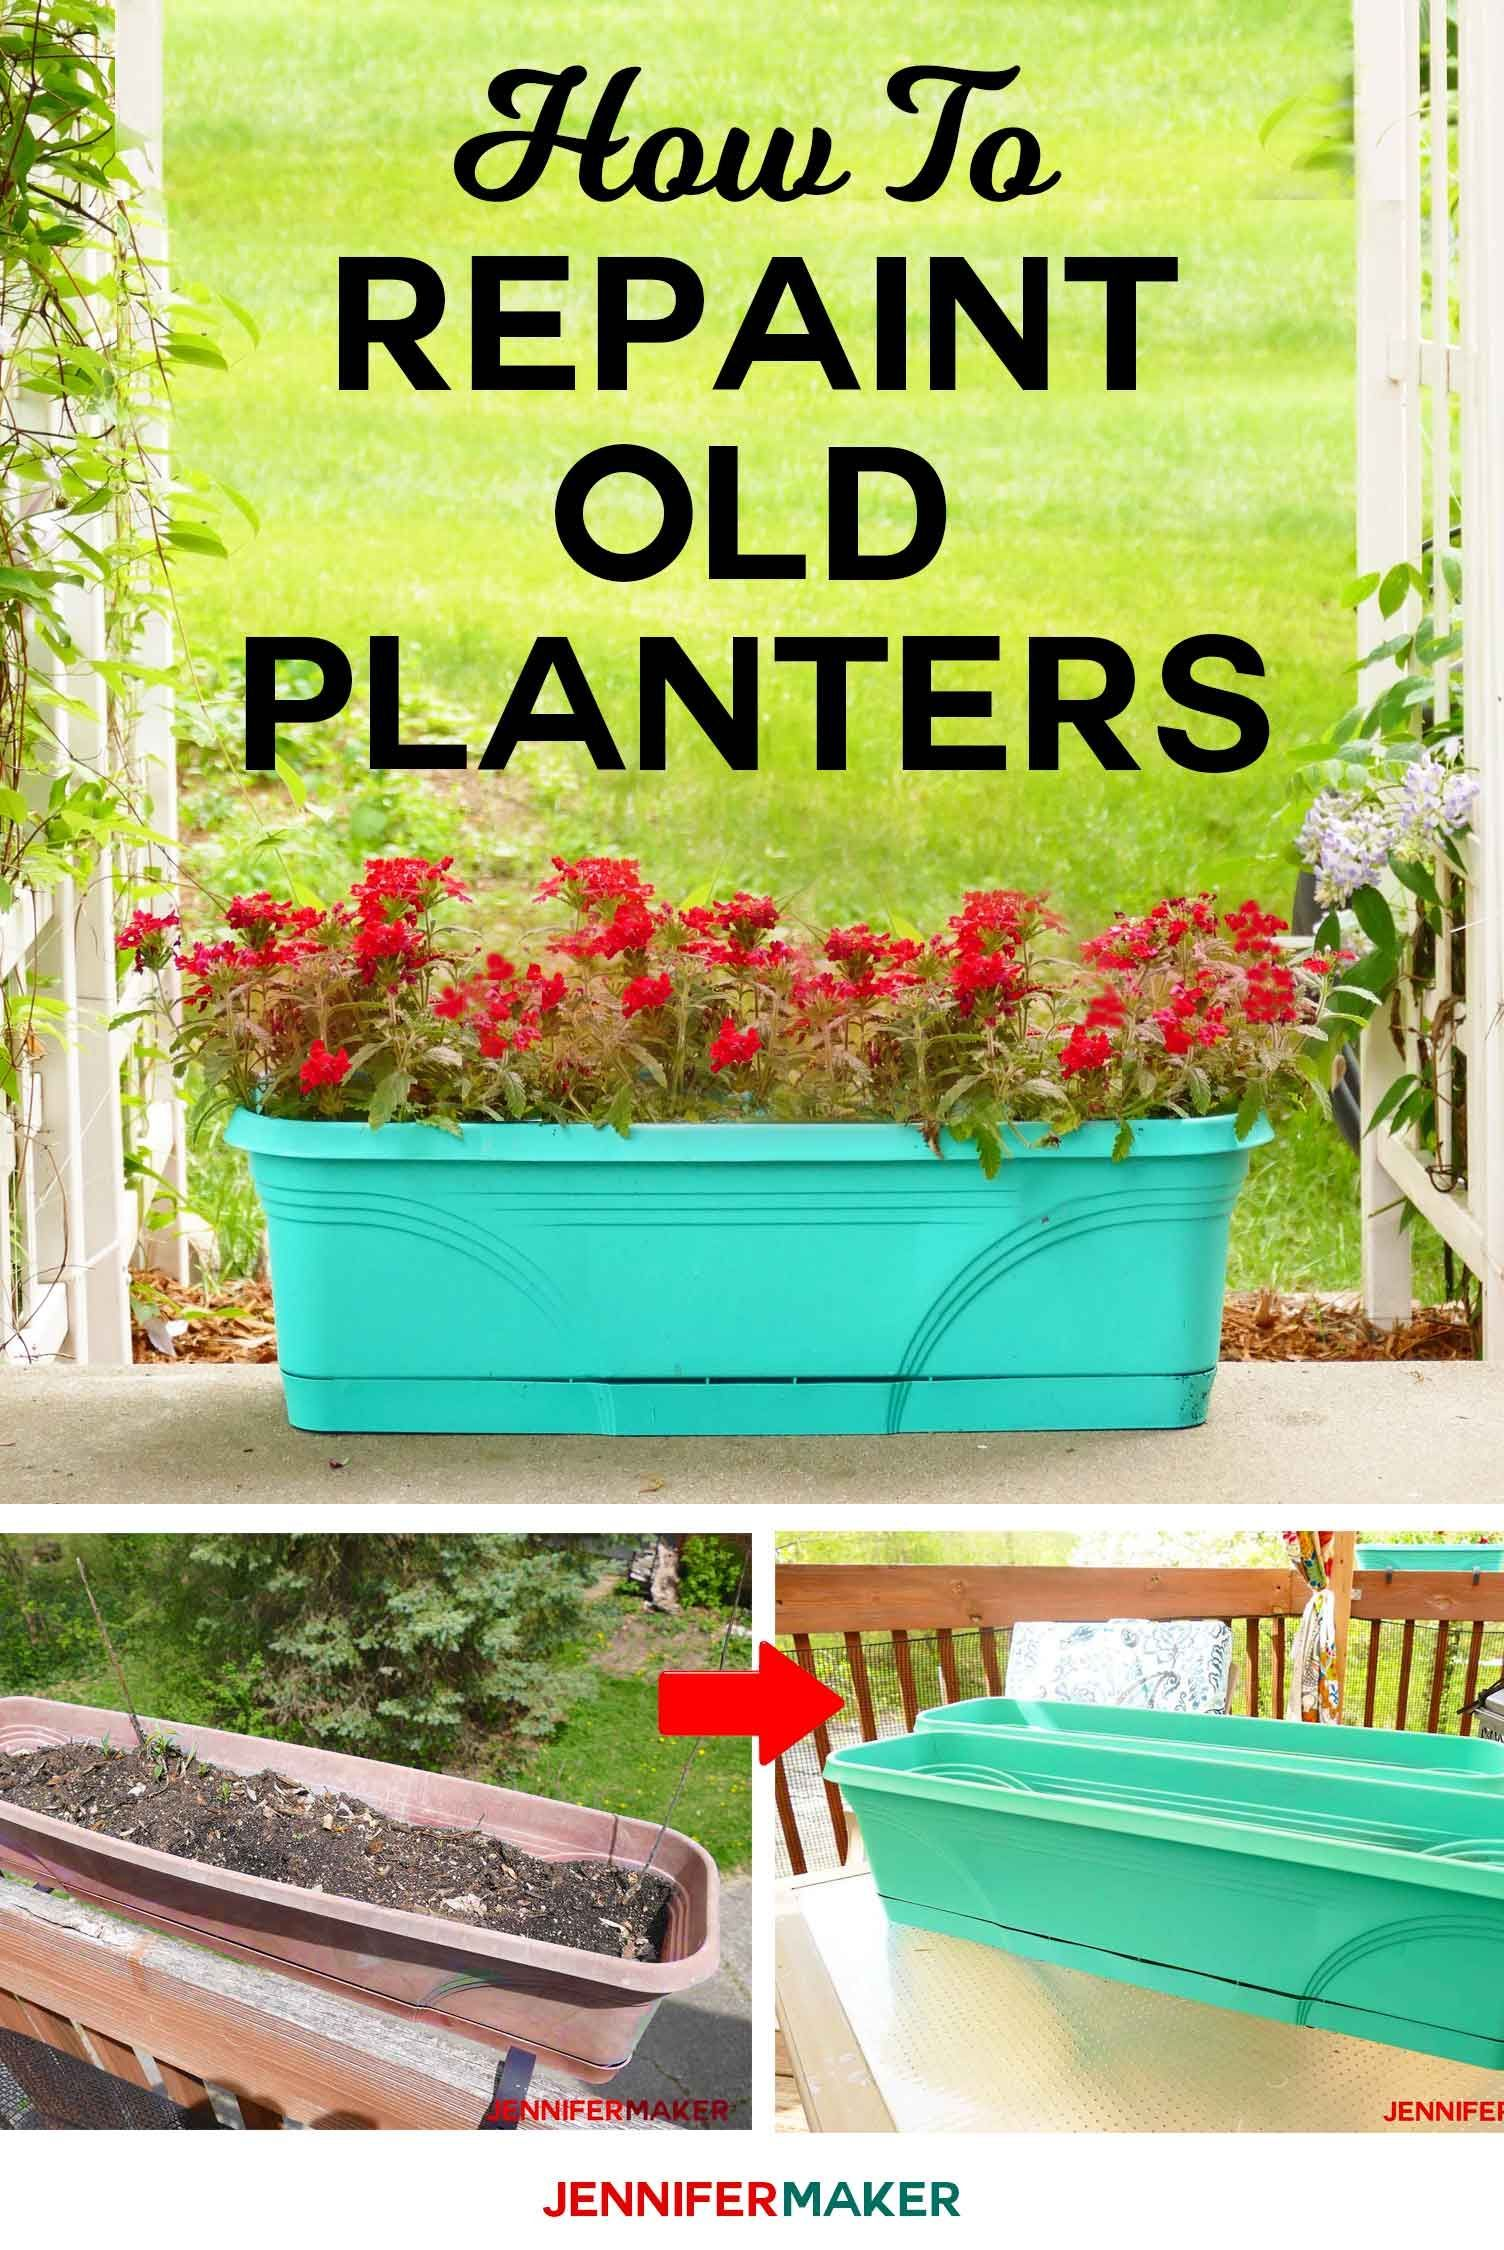 275 & How to Spray Paint Plastic Planters | DIY Gardens ...